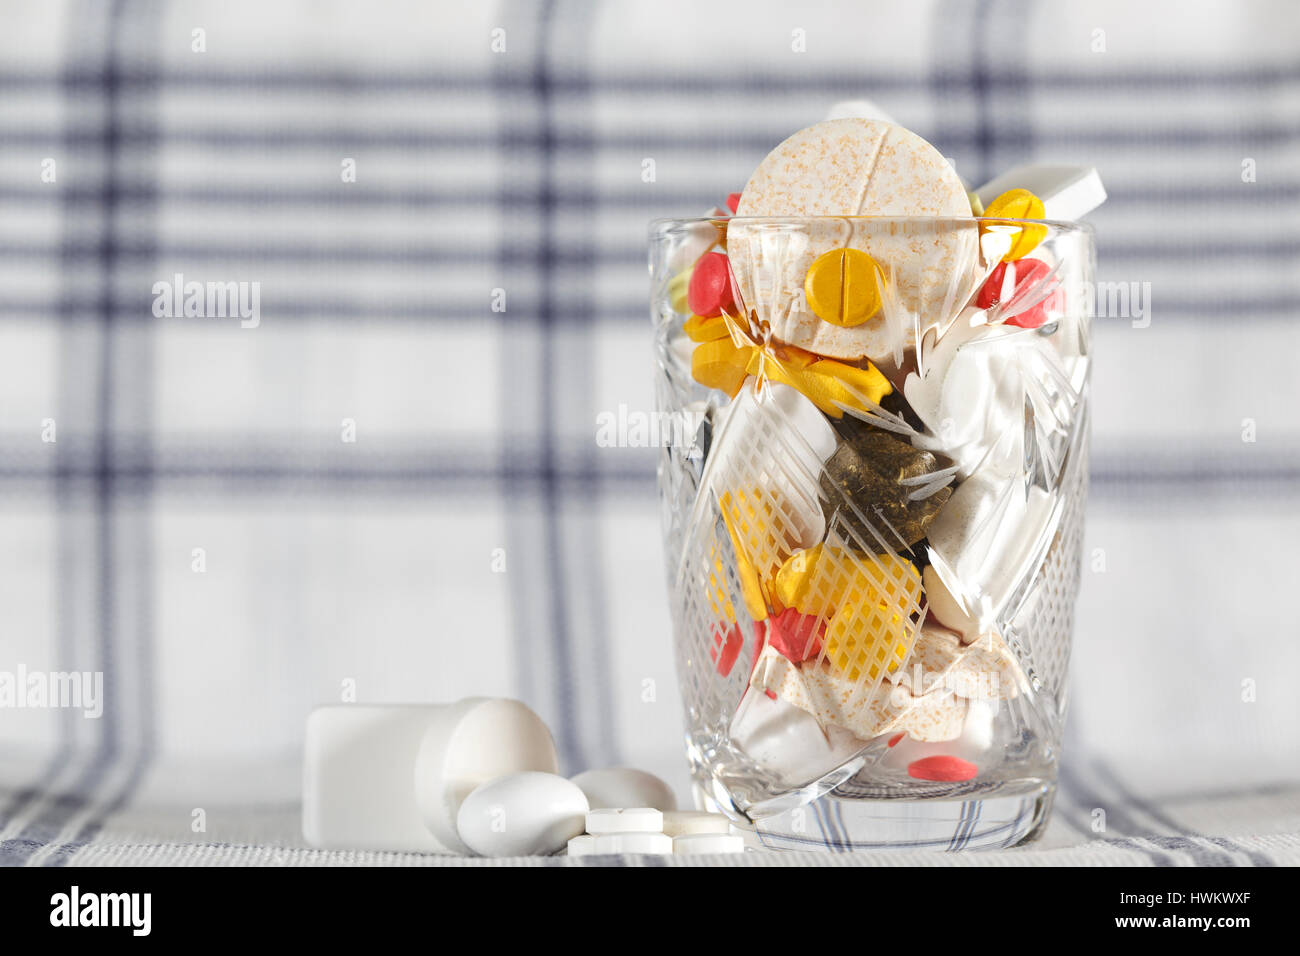 Overdose of medicines is excessive number of pills and this has been shown in a glass filled to the brim - Stock Image